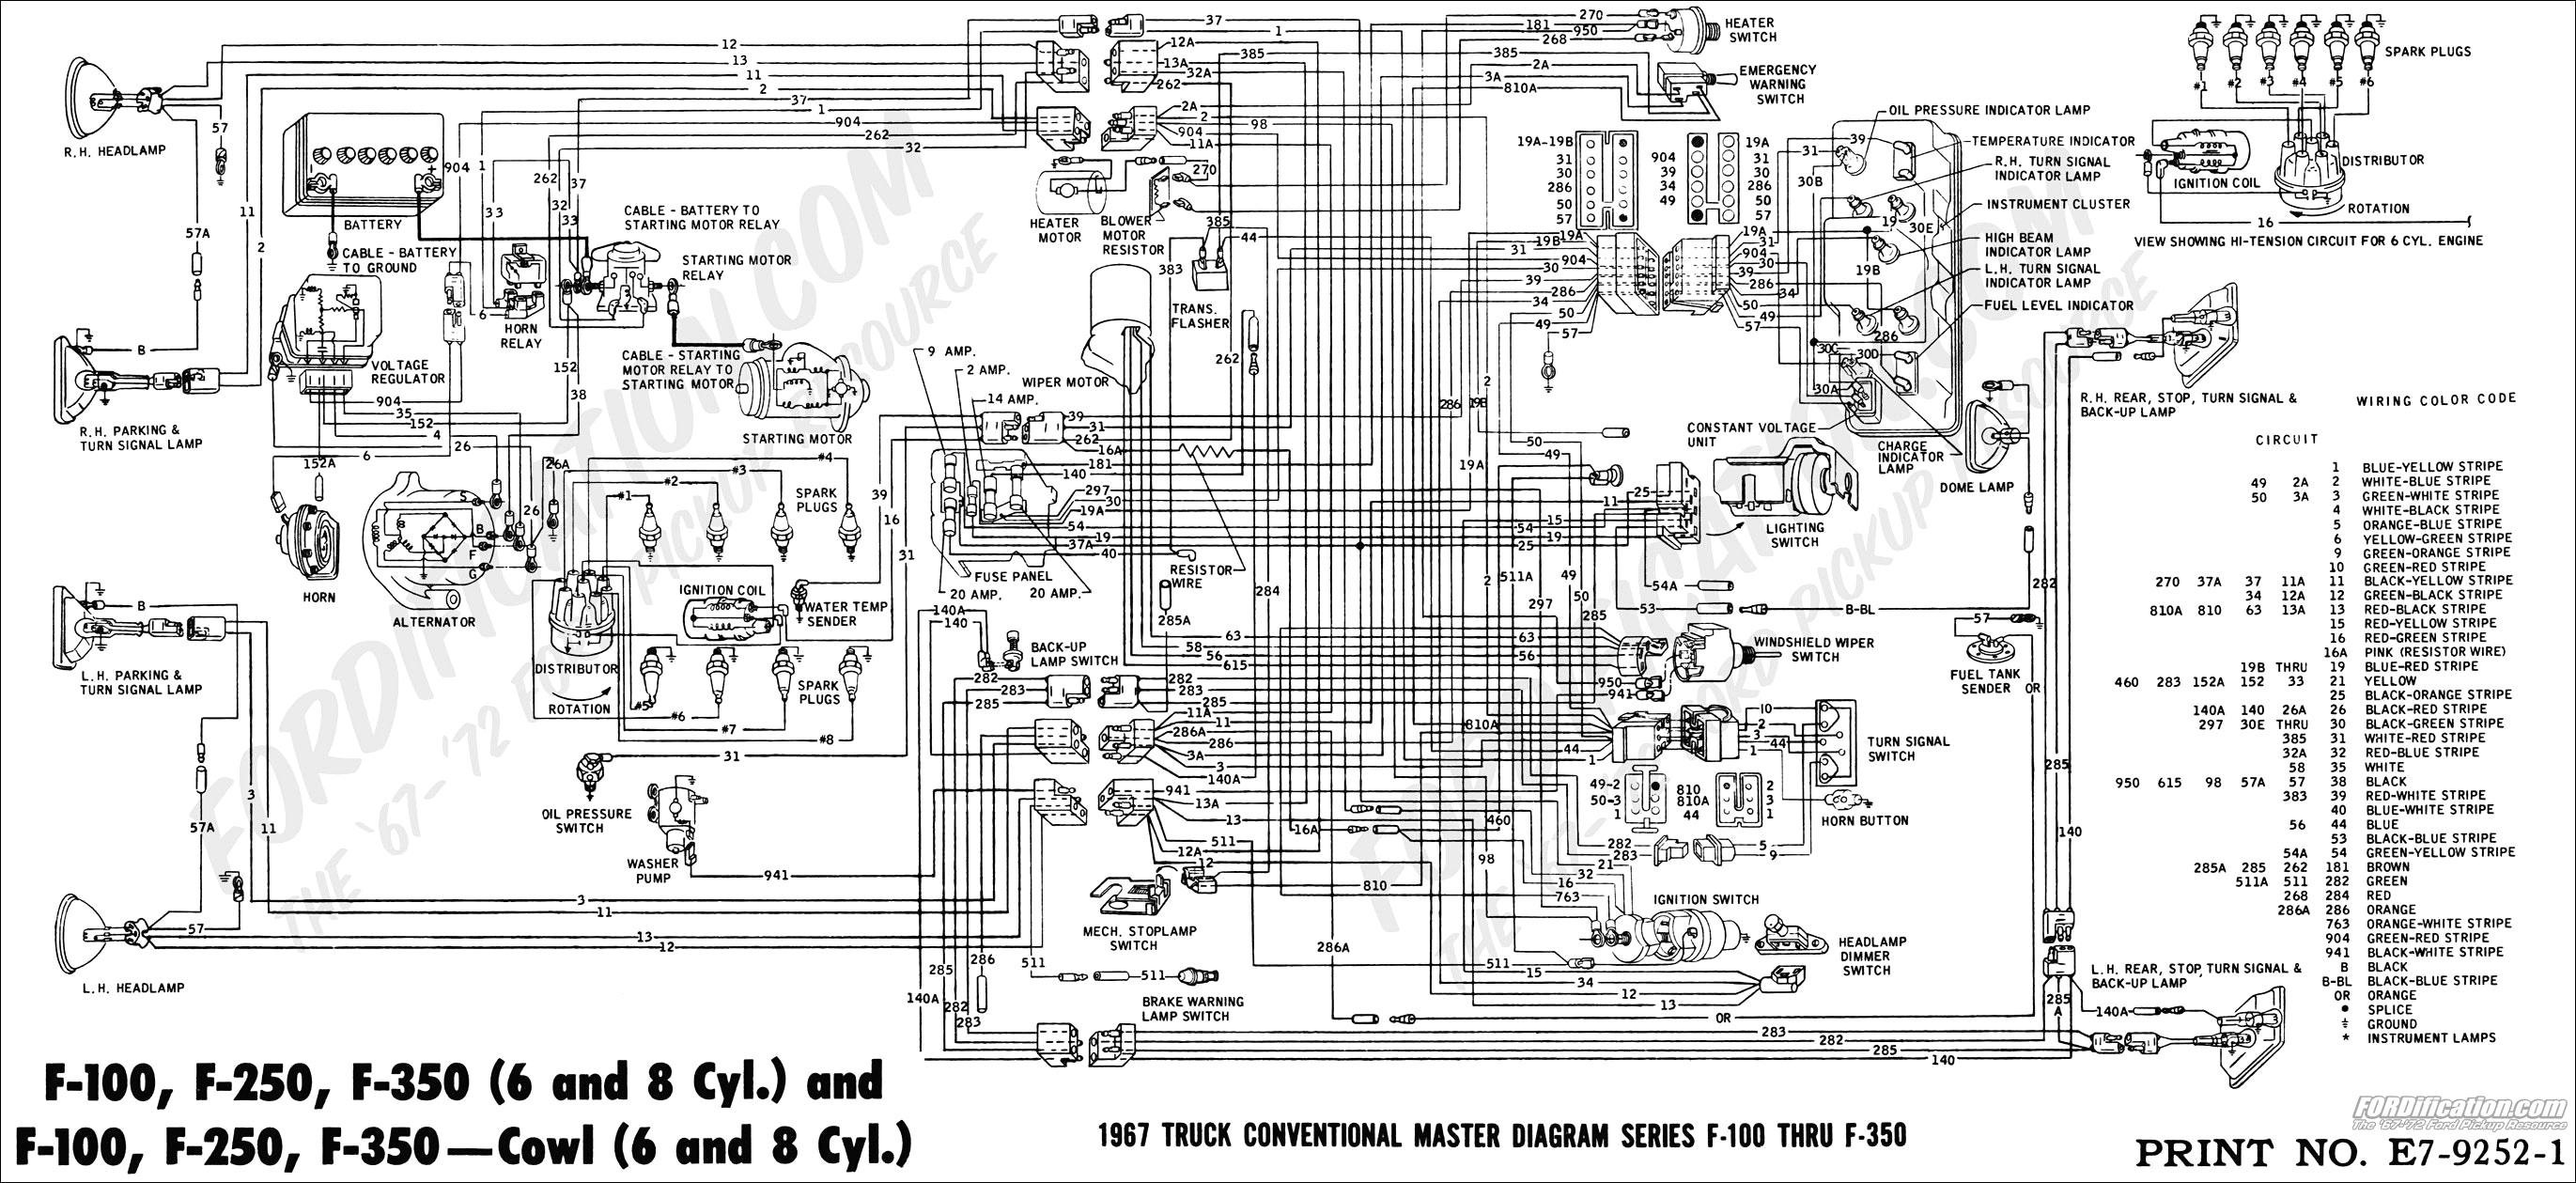 rear fuse box diagram 300x145 2002 buick lesabre rear fuse box rh pullupngo co